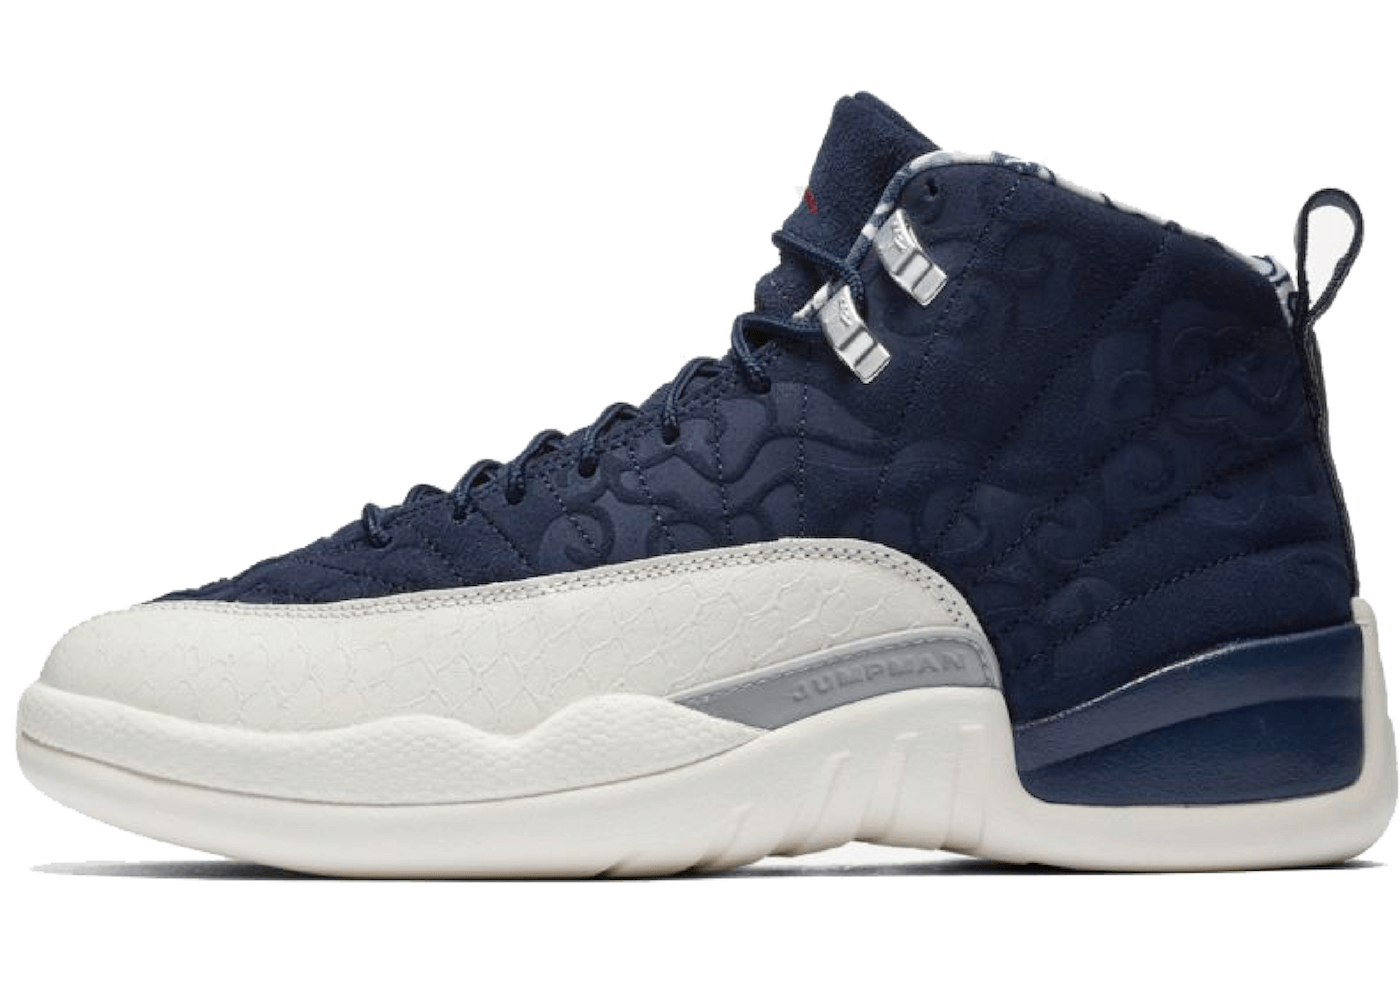 Nike Jordan 12 Retro International Flightの写真